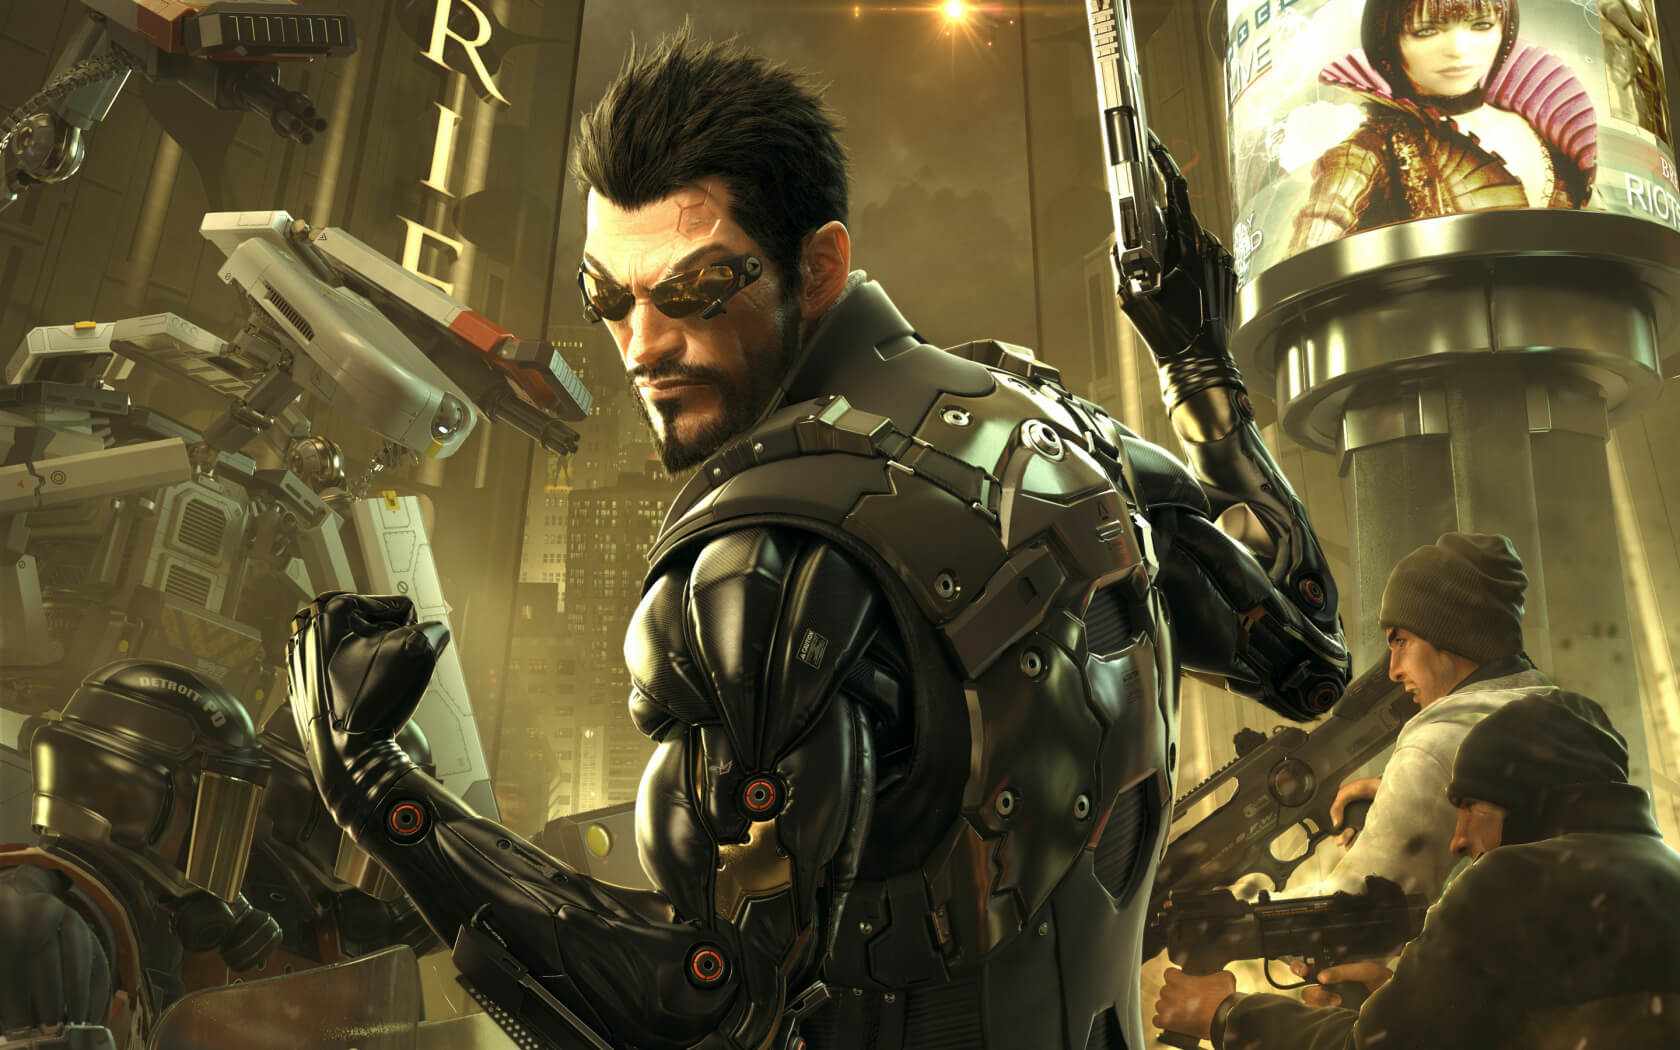 Square Enix isn't giving up on the Deus Ex series